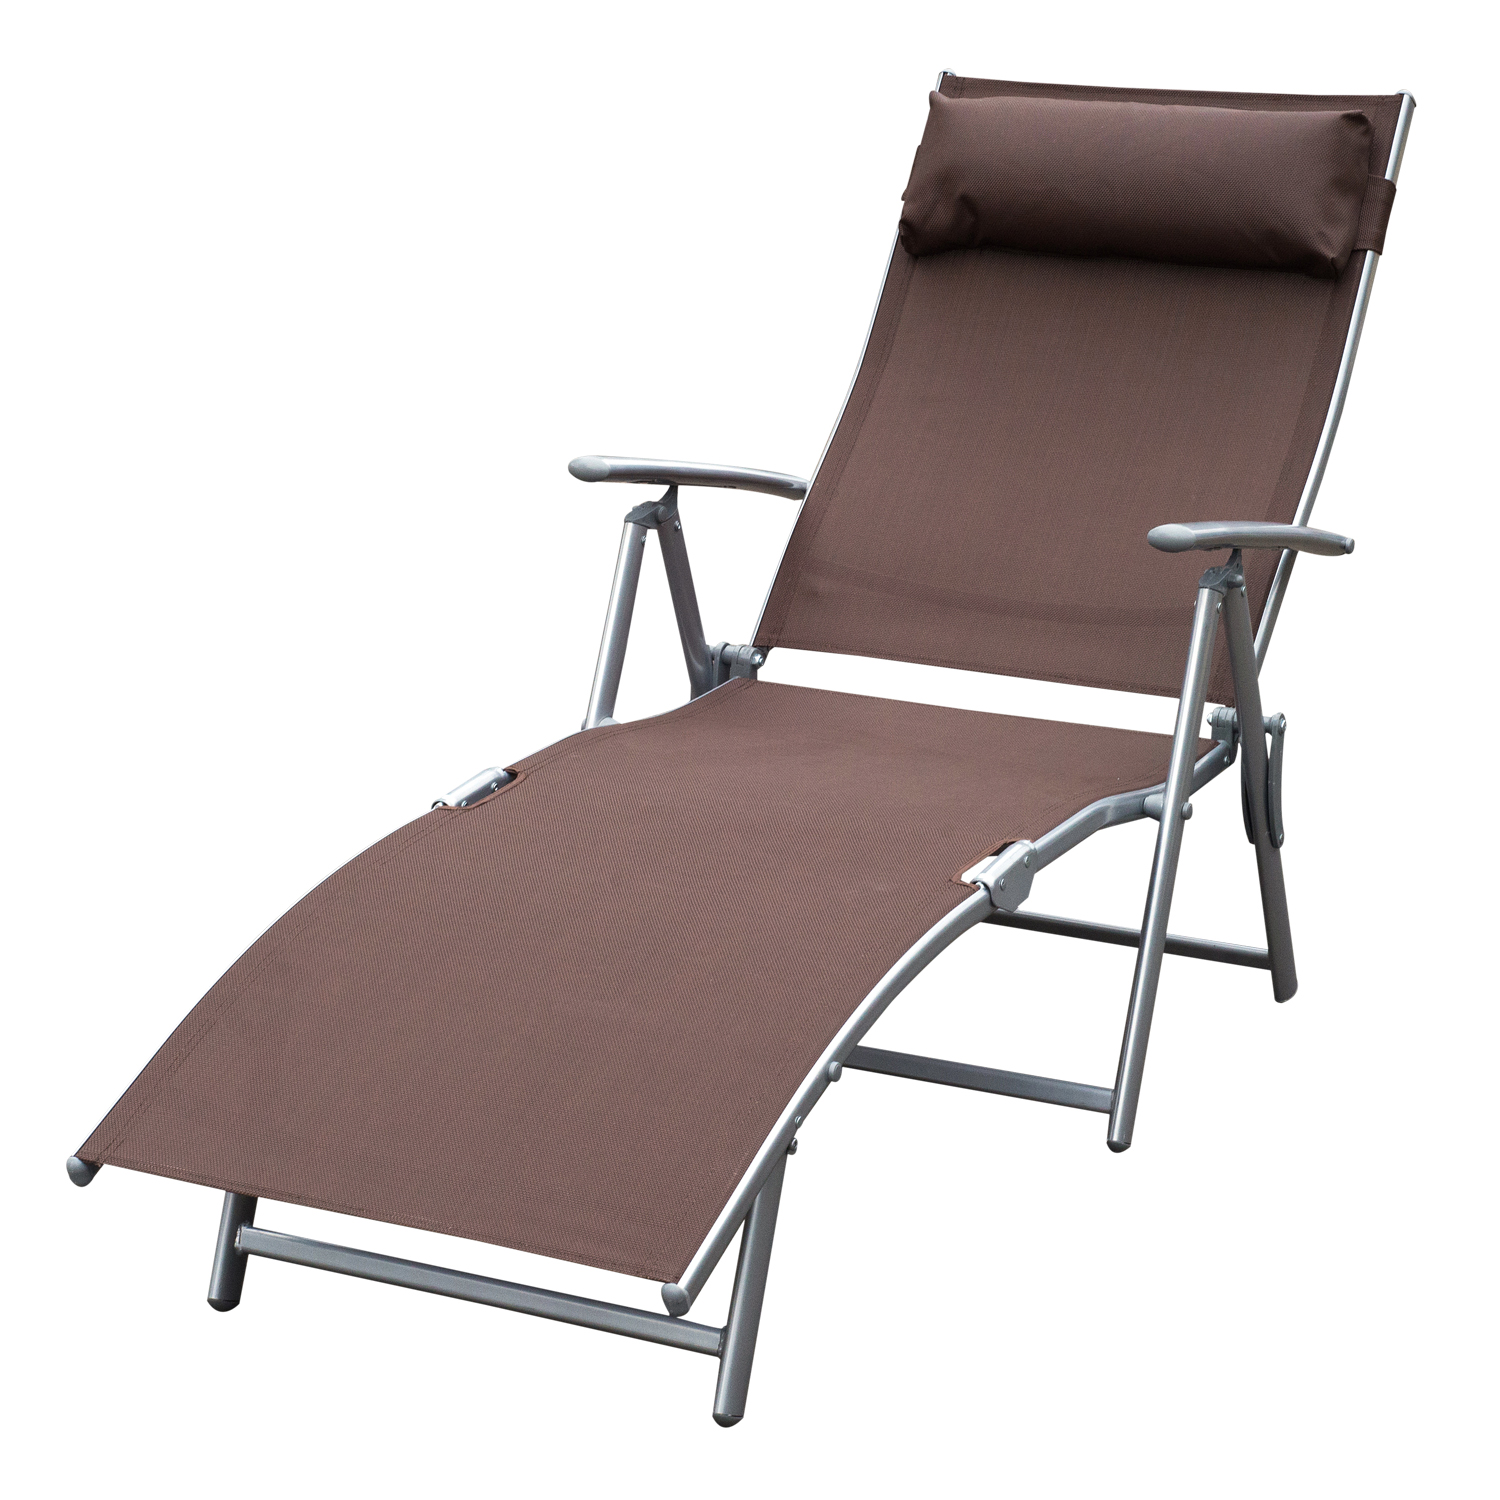 Outsunny Sling Fabric Patio Reclining Chaise Lounge Chair Folding 5 Position Adjustable... by Aosom LLC